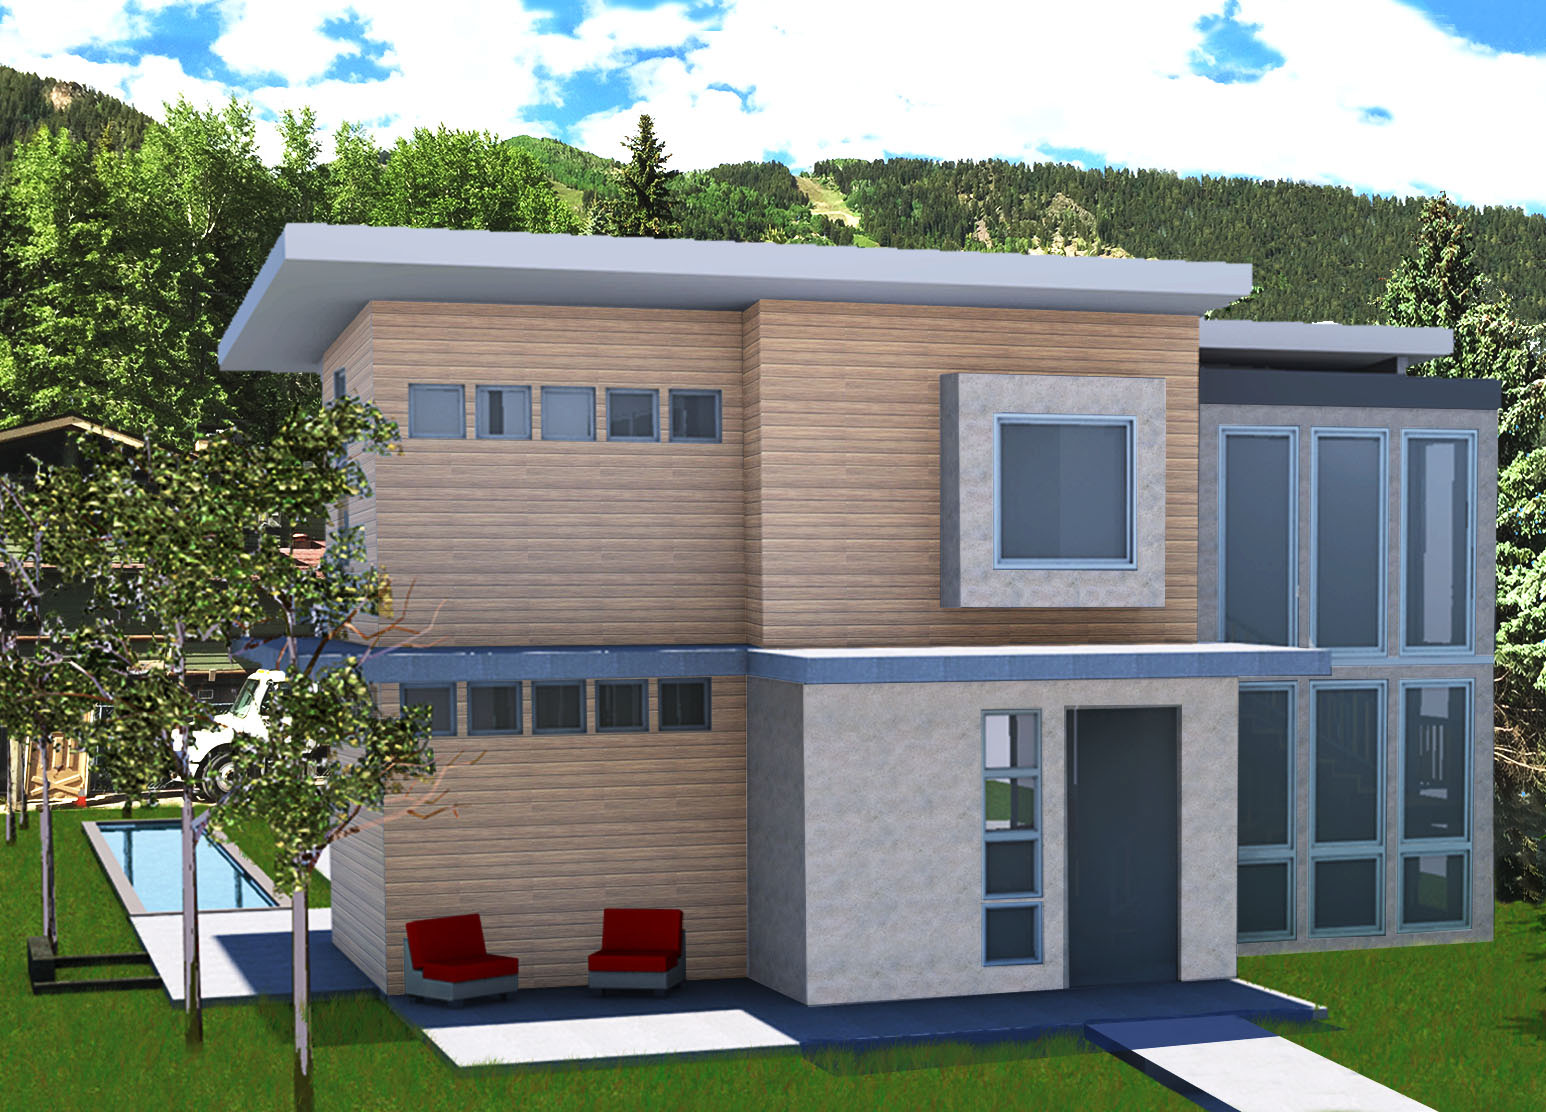 Single Family Home for Sale at World Class Opportunity 905 E Hopkins Avenue Central Core, Aspen, Colorado 81611 United States